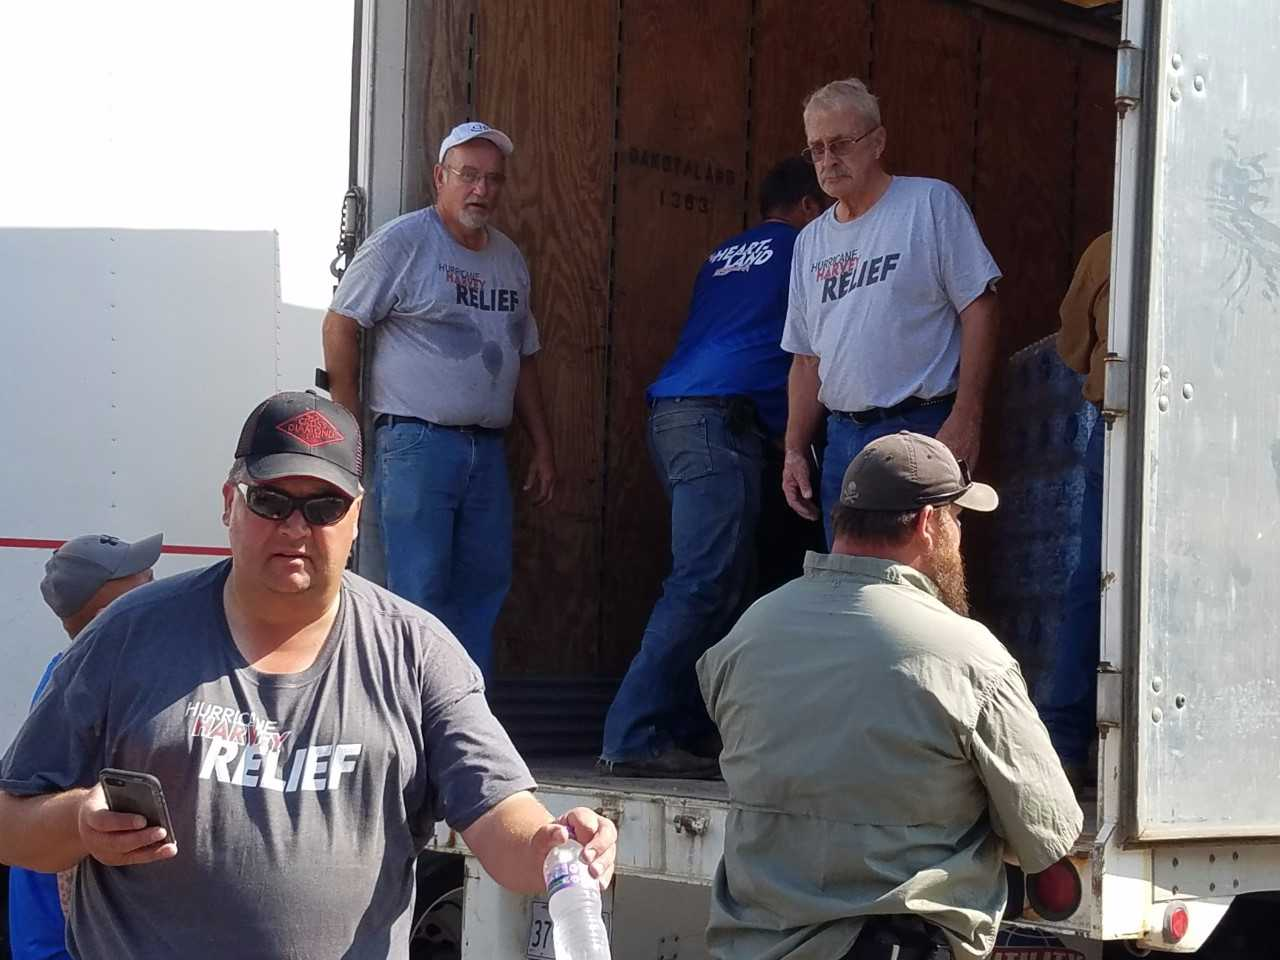 The group unloading items from their truck while in Texas. Photo: Virginia Kipp